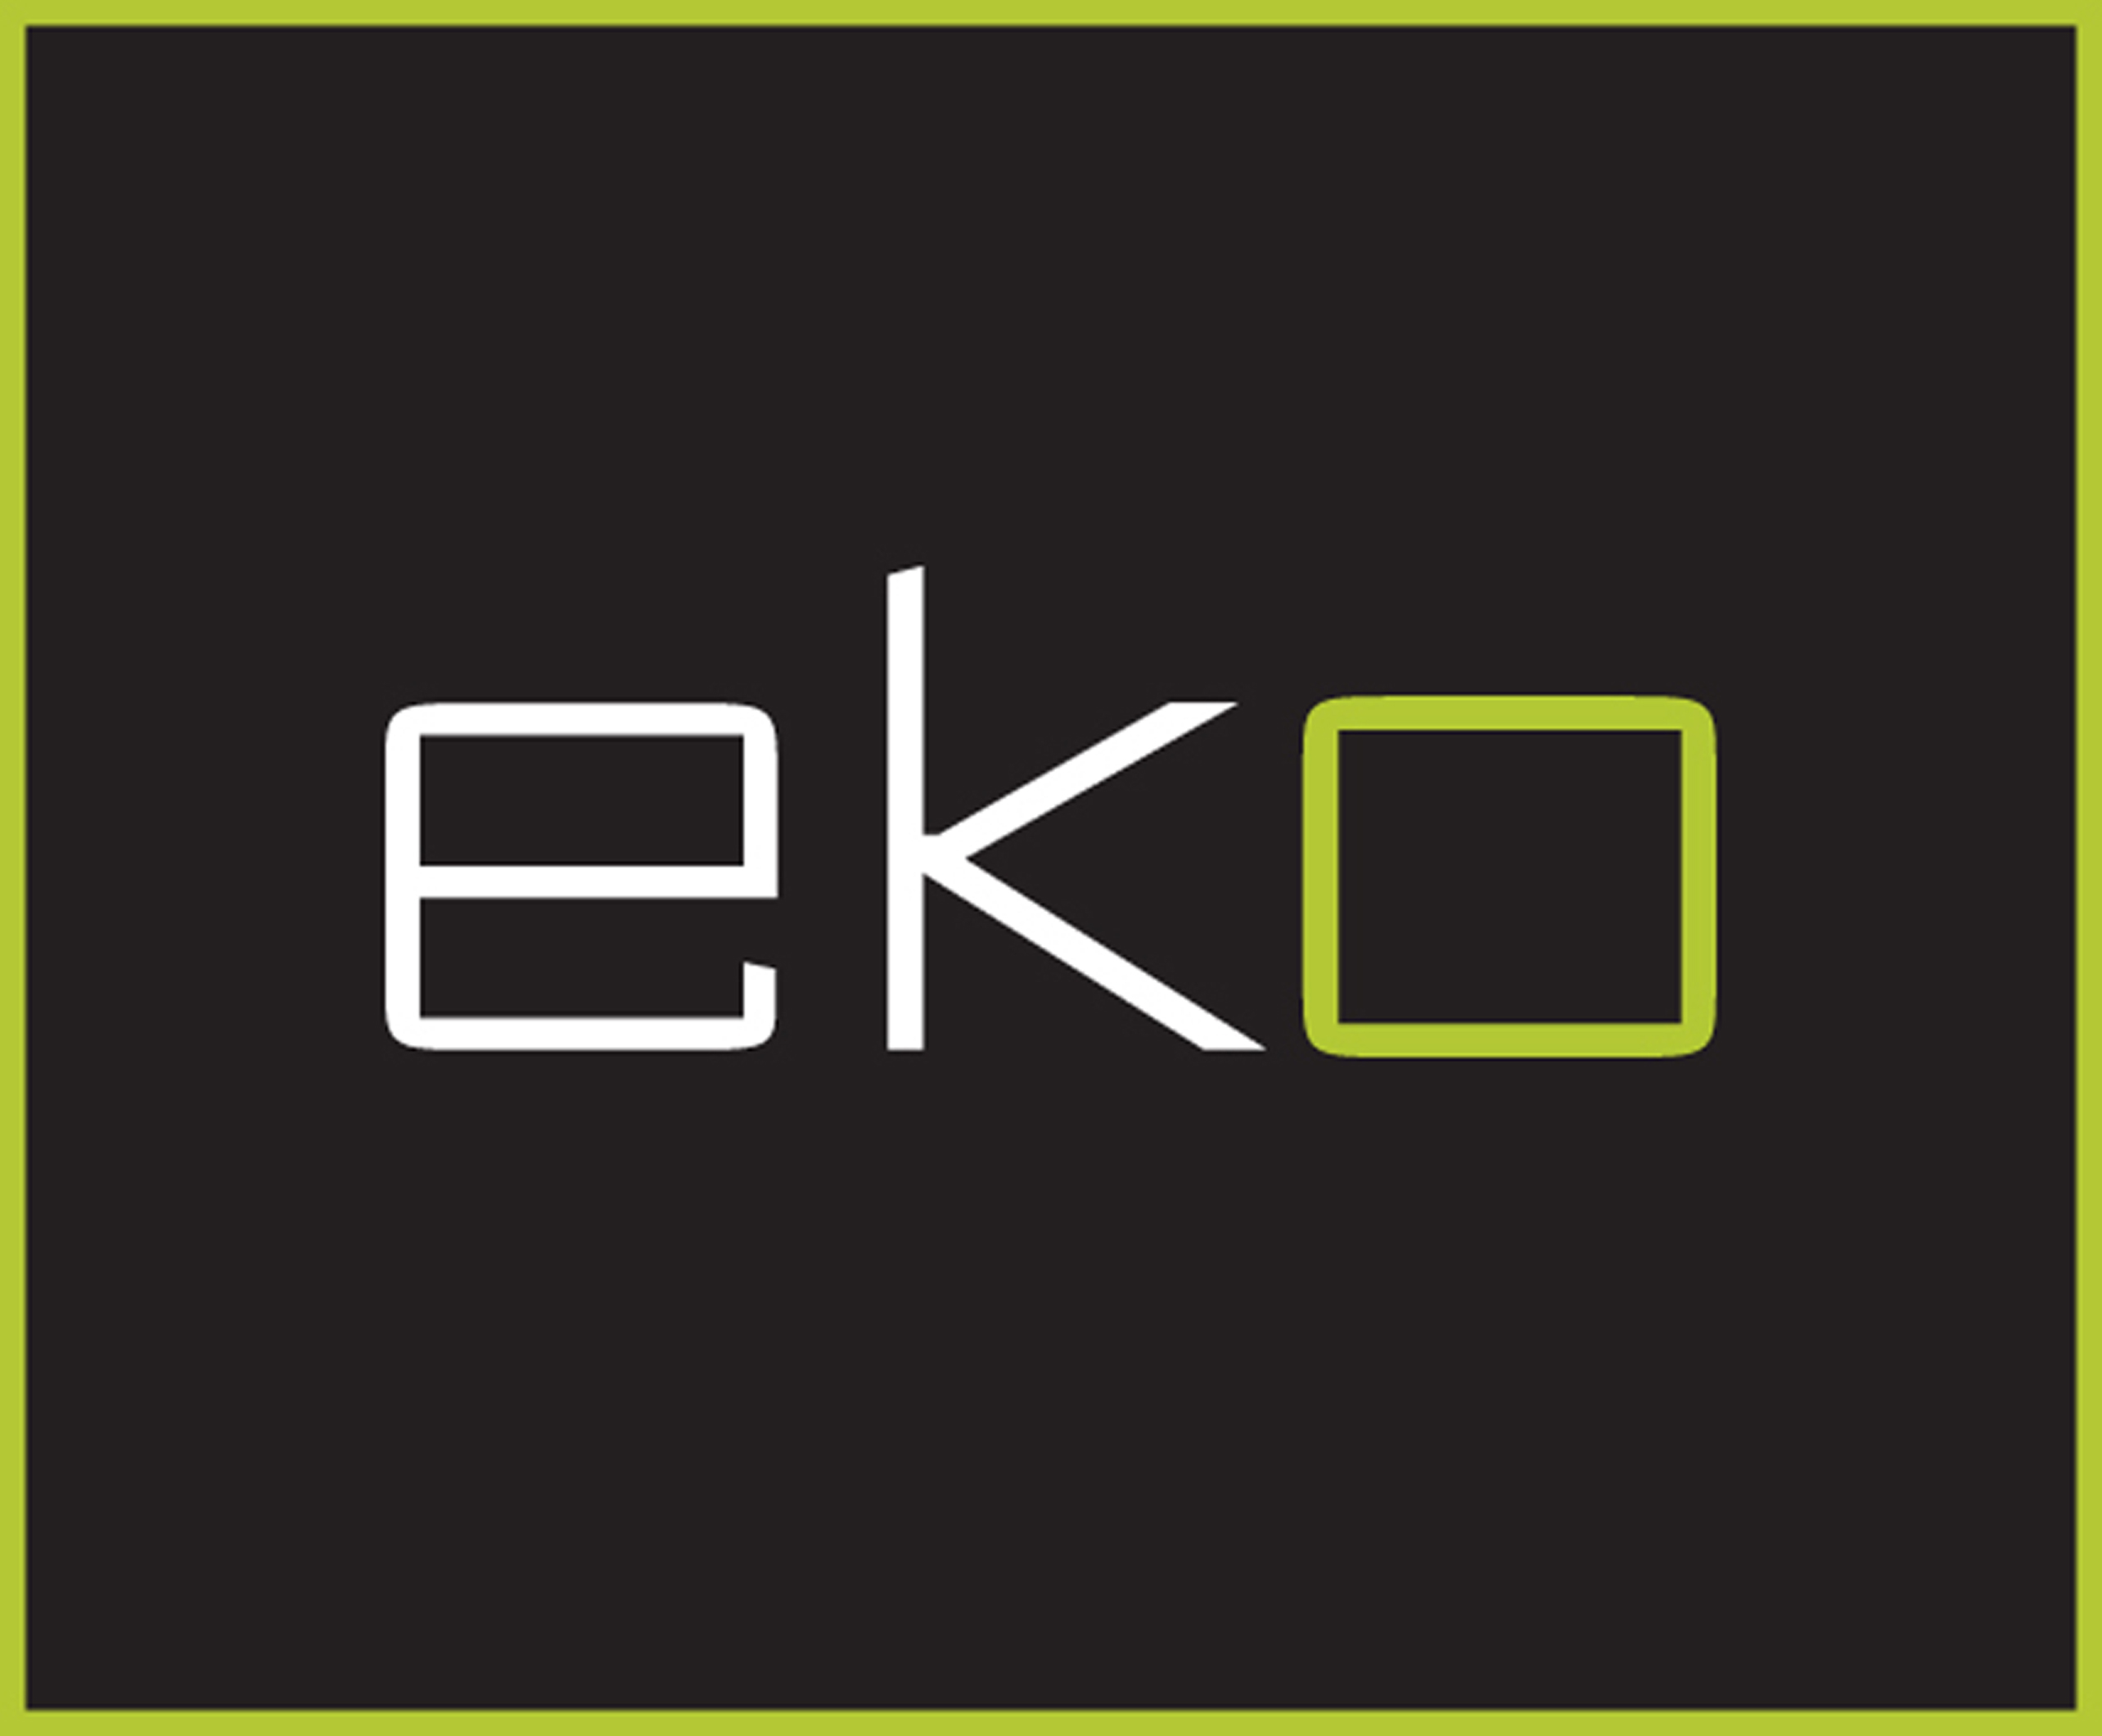 eko contract Trearc Brands Inc